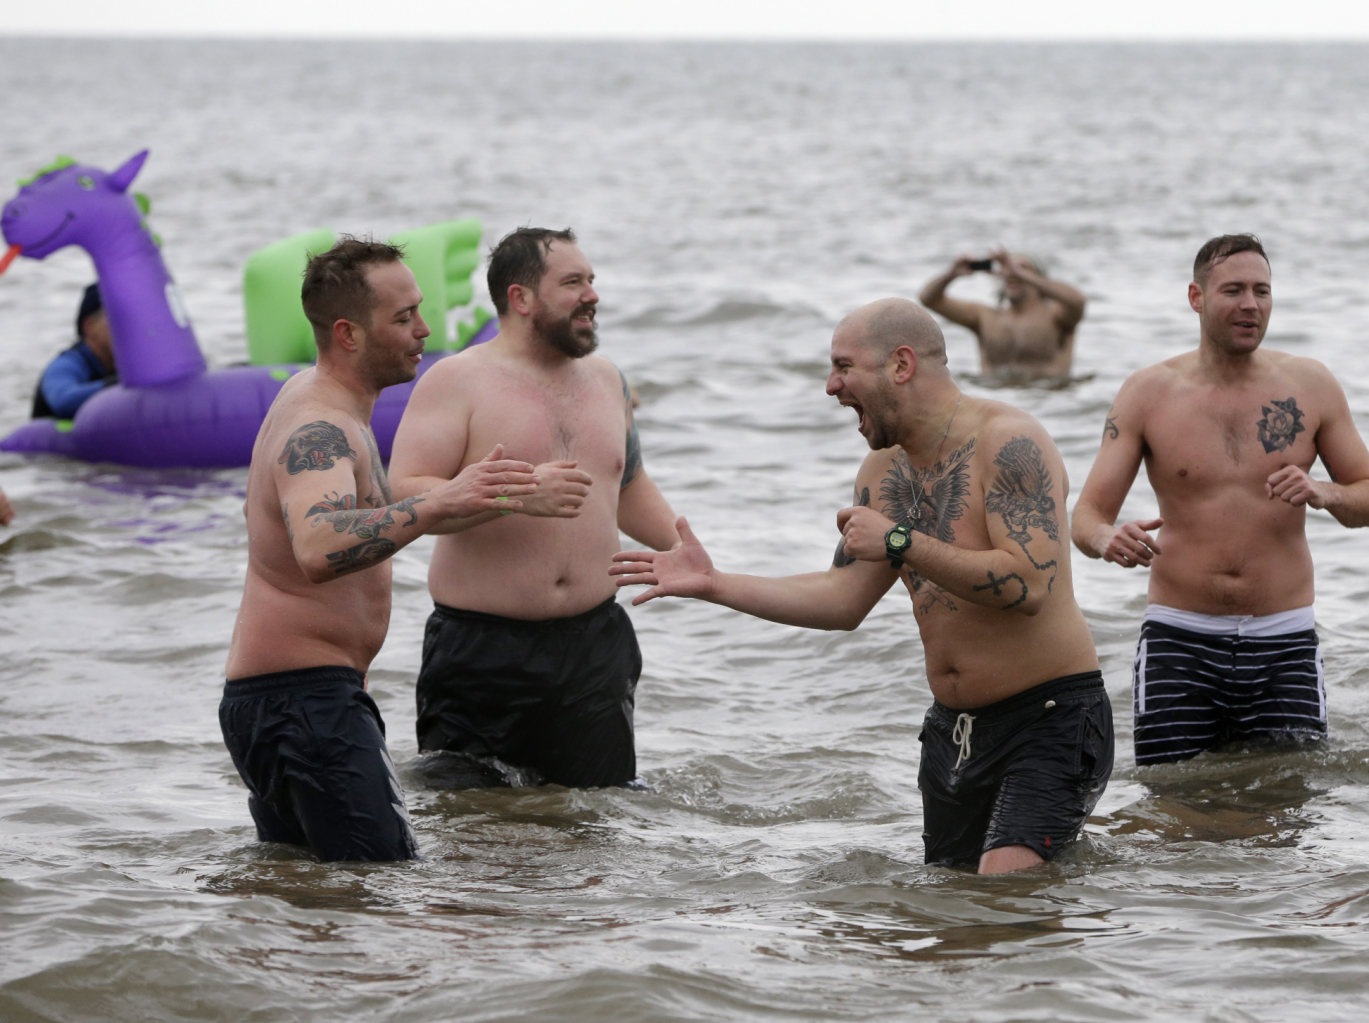 Tattooed men congratulate each other on taking the plunge during the 110th annual Coney Island Polar Bear Club ocean swim at Coney Island in New York,